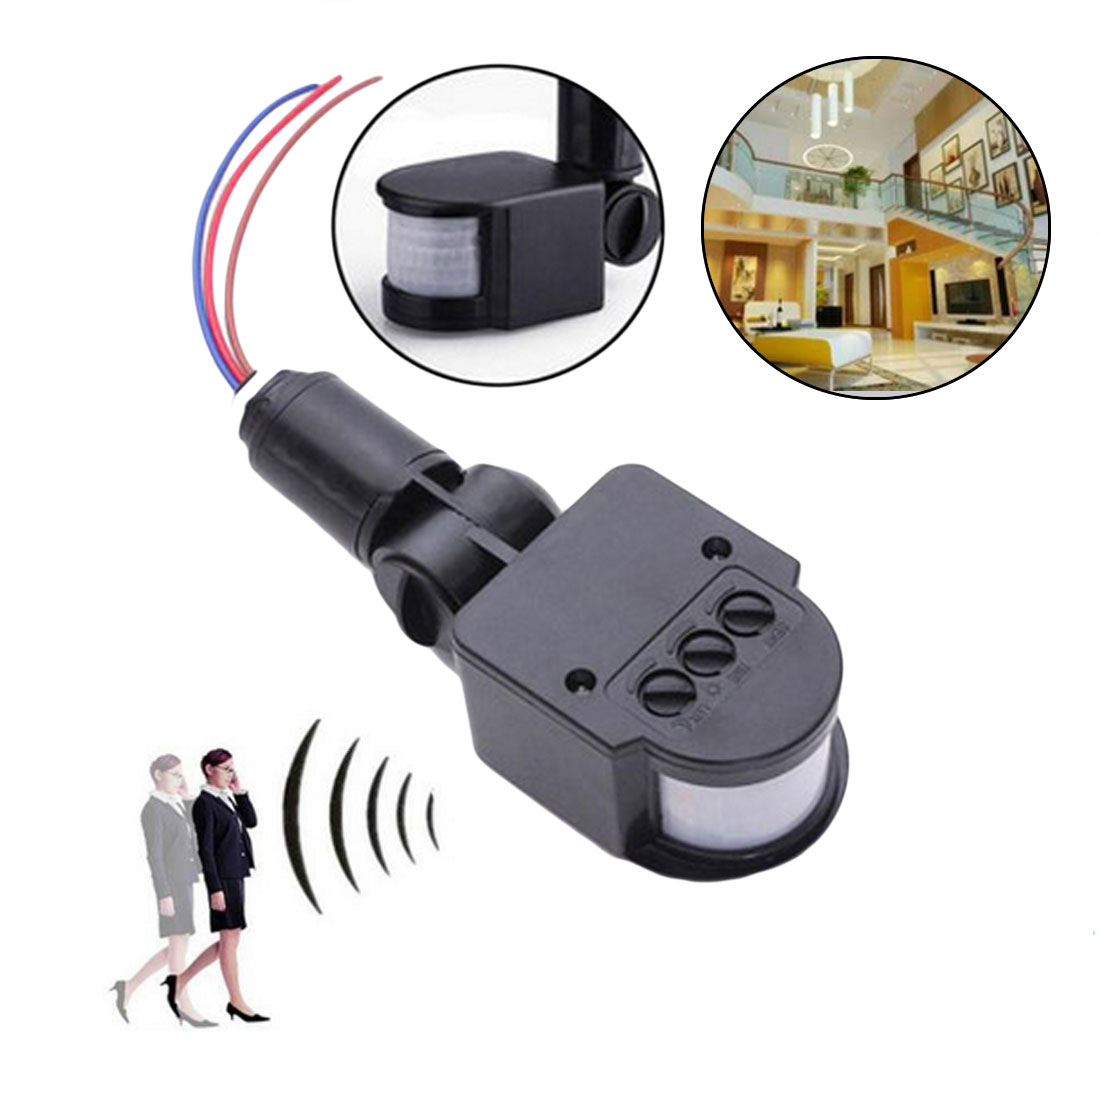 Infrared Body Sensor LED Motion Sensor Outdoor Wall Mount Sensor Automatic Infrared PIR Movement Detector Light-Switch